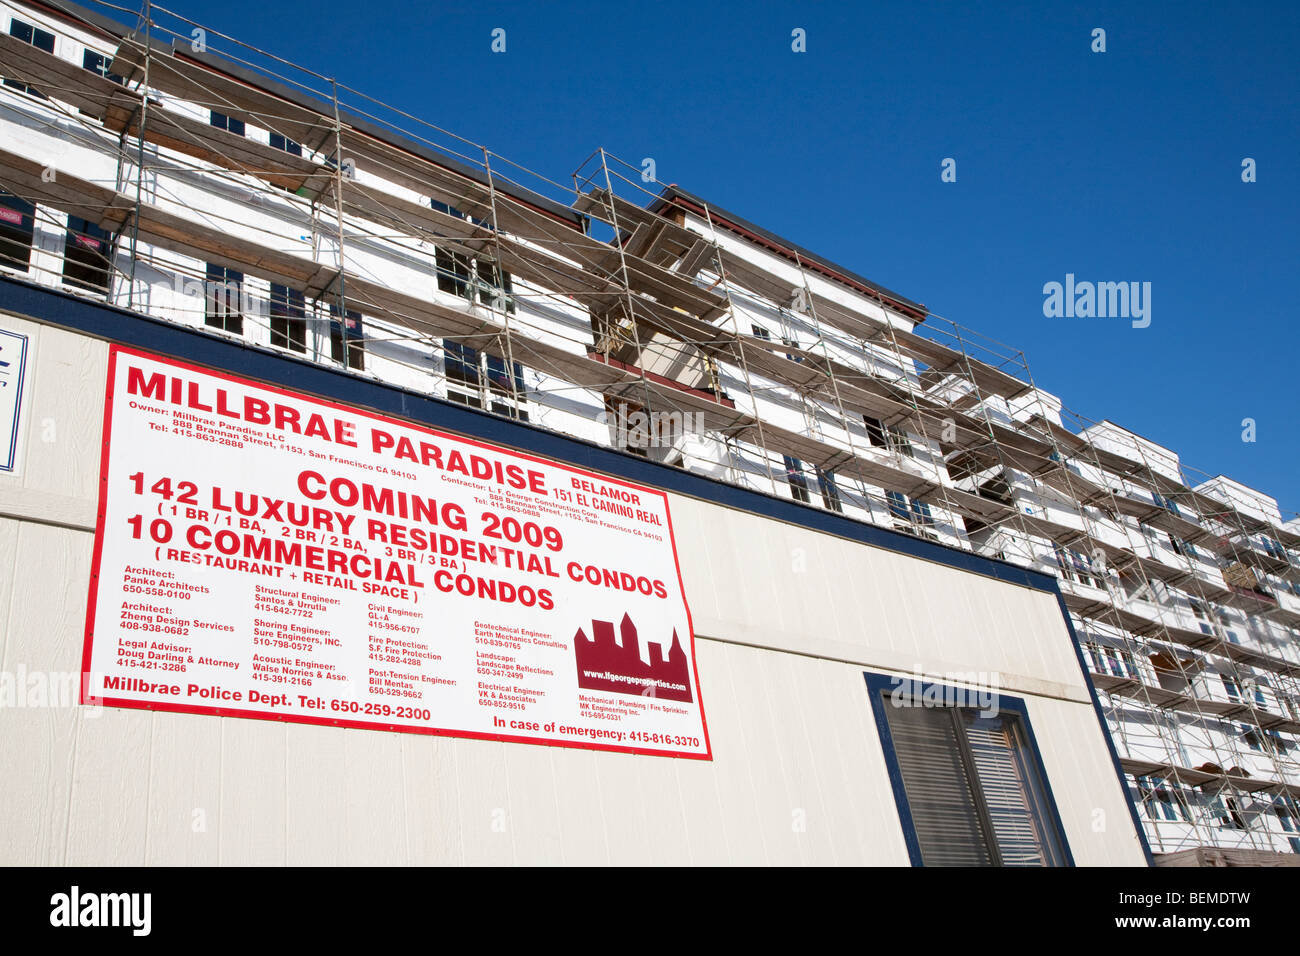 A low angle view of an advertising sign promoting a transit orientated housing development. Millbrae, California, Stock Photo